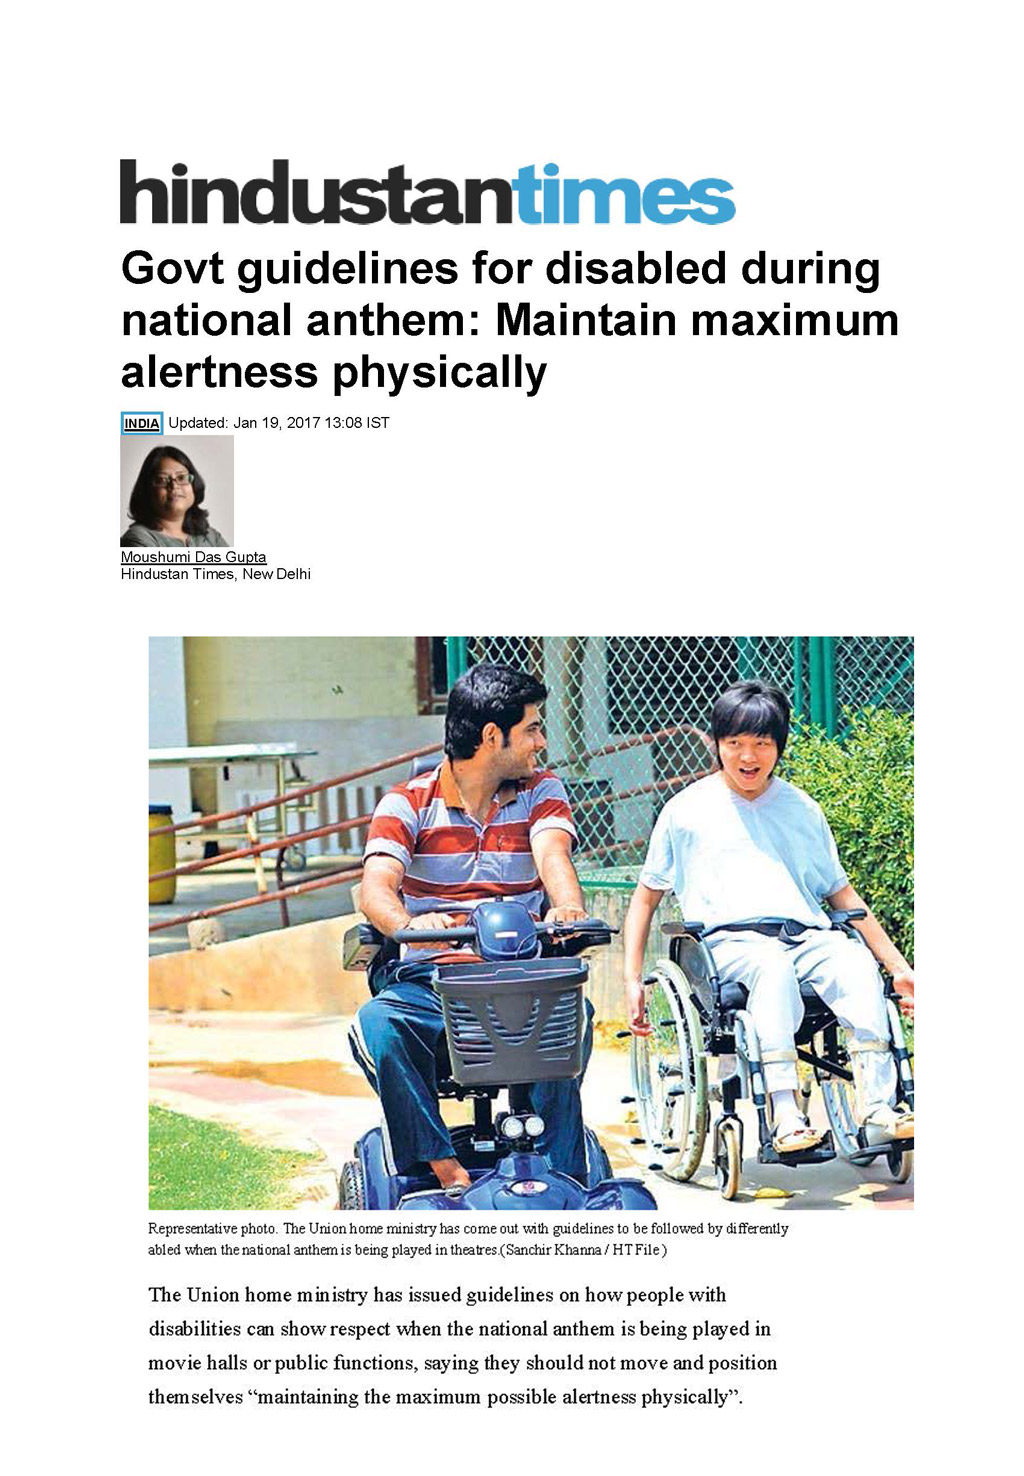 Govt guidelines for disabled during national anthem: Maintain maximum alertness physically